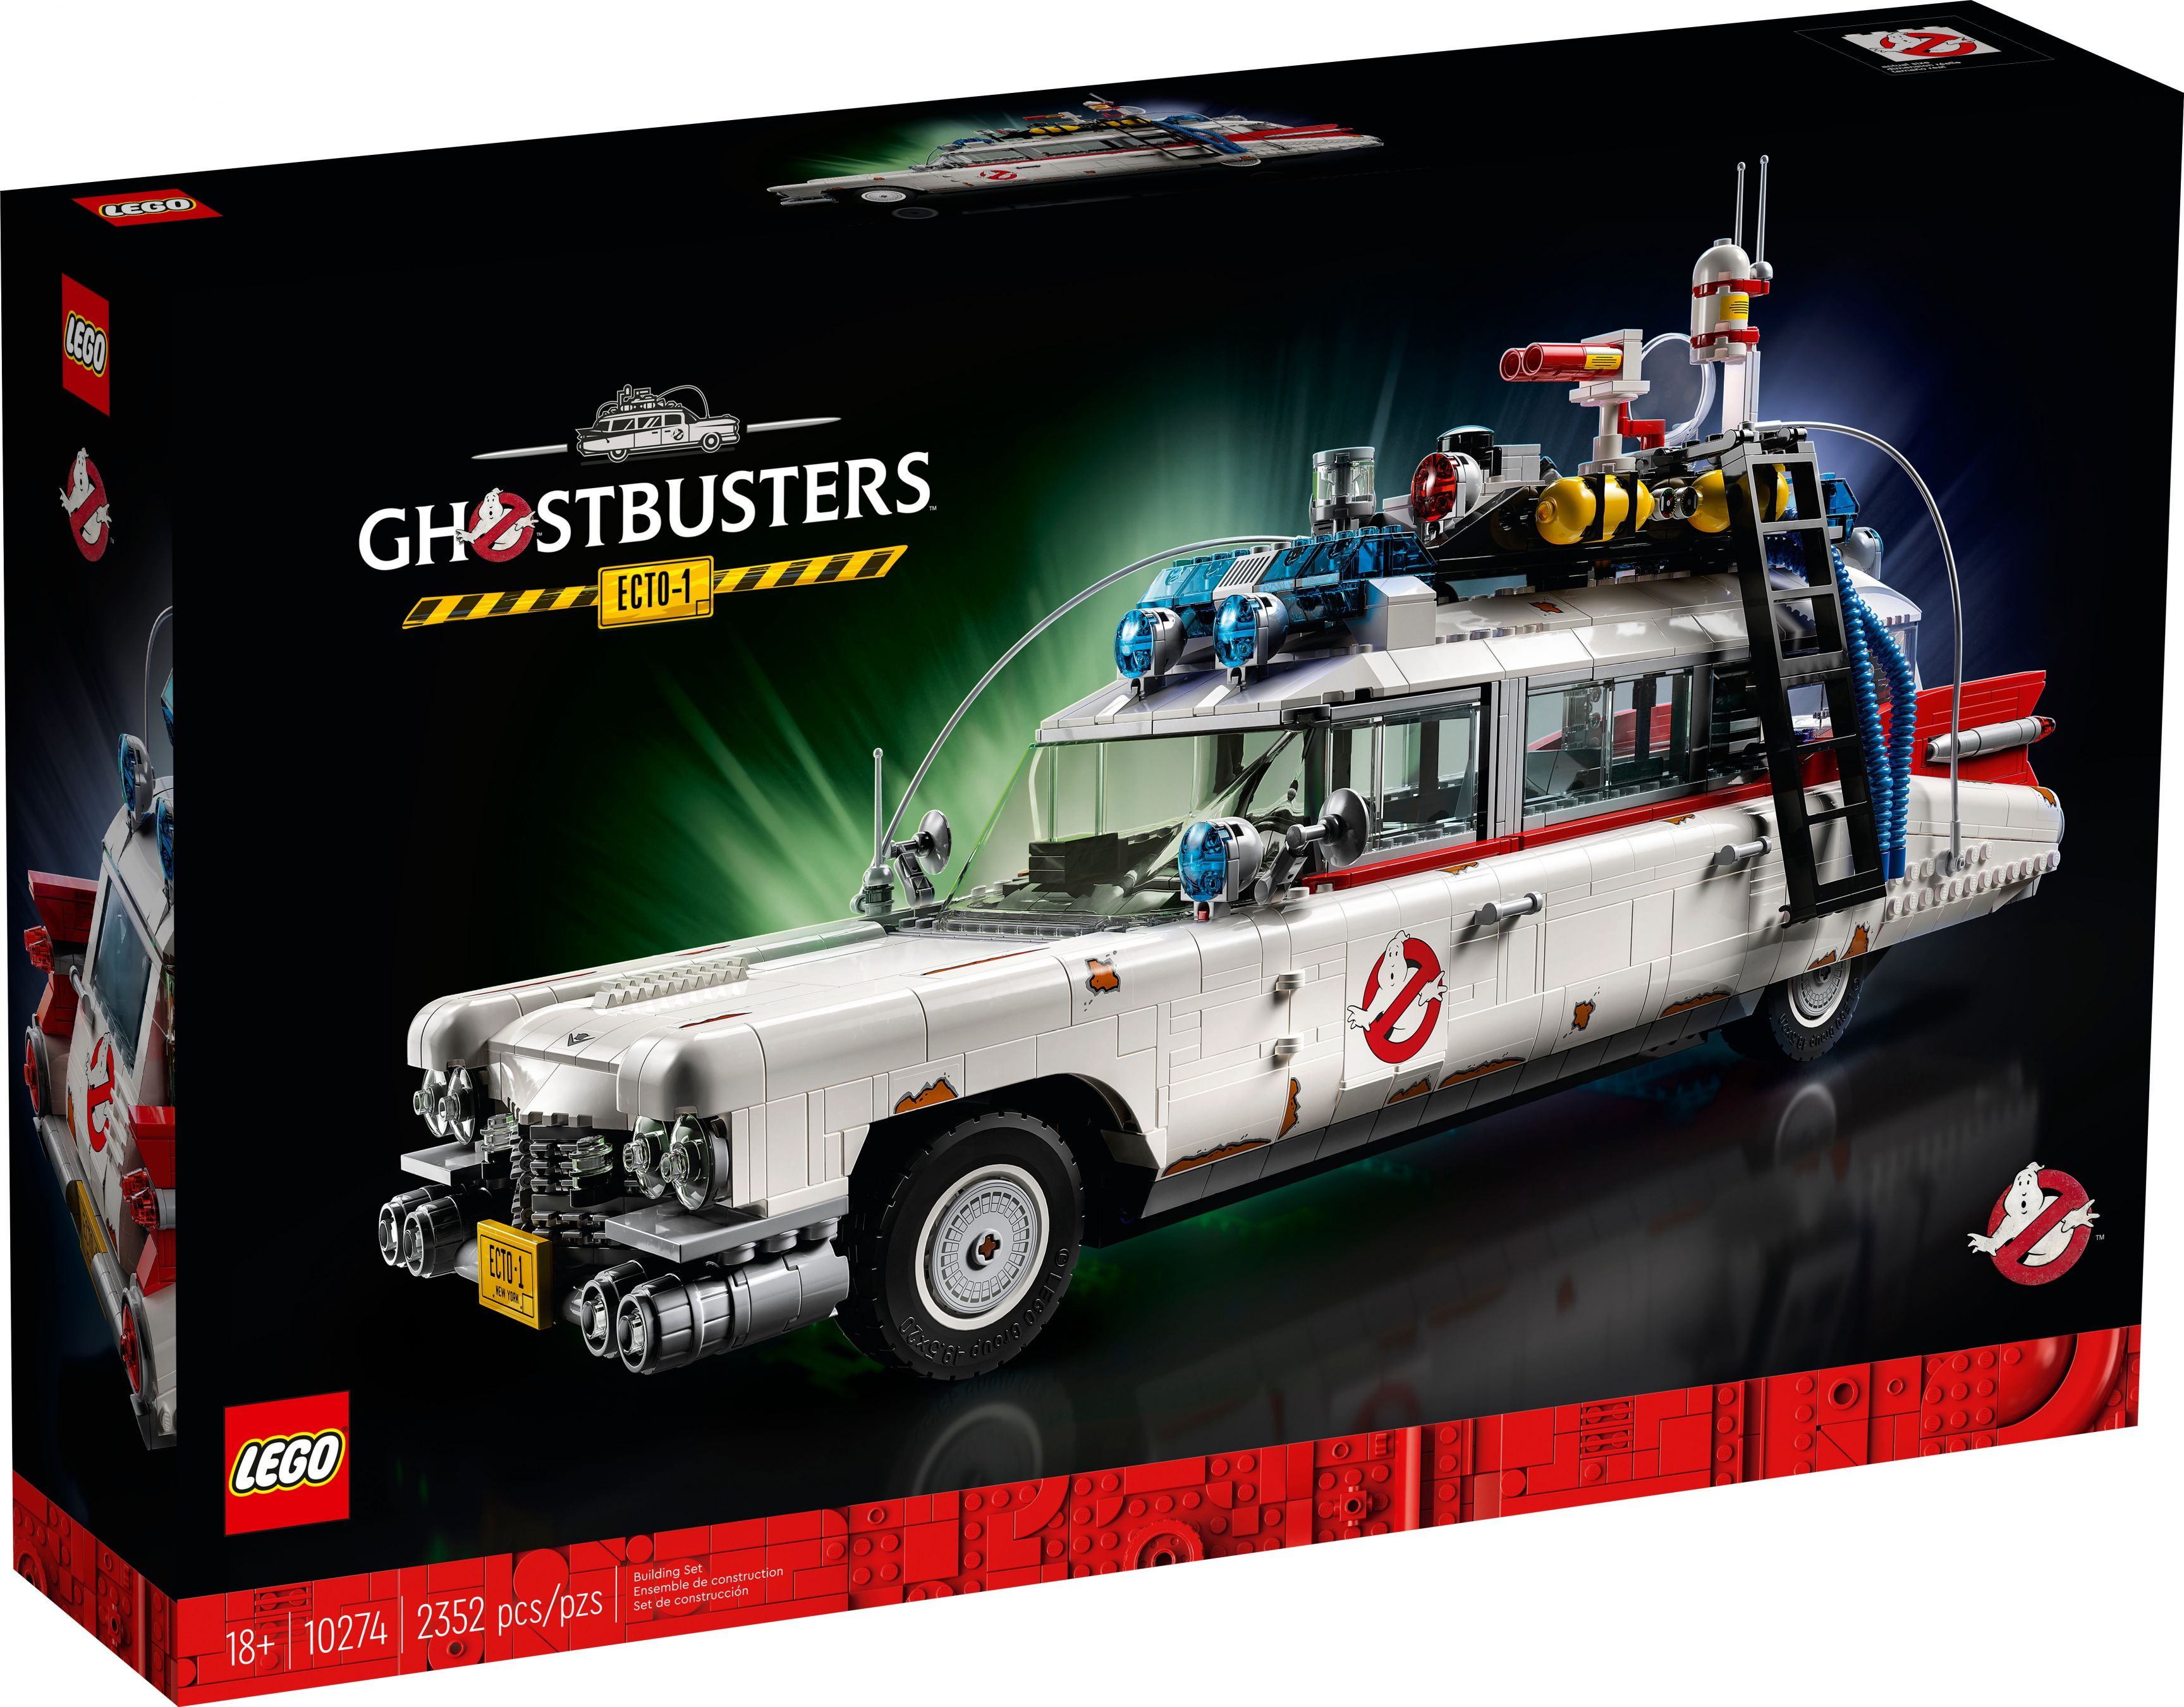 LEGO Advanced Models 10274 Ghostbusters™ ECTO-1 LEGO_10274_alt1.jpg